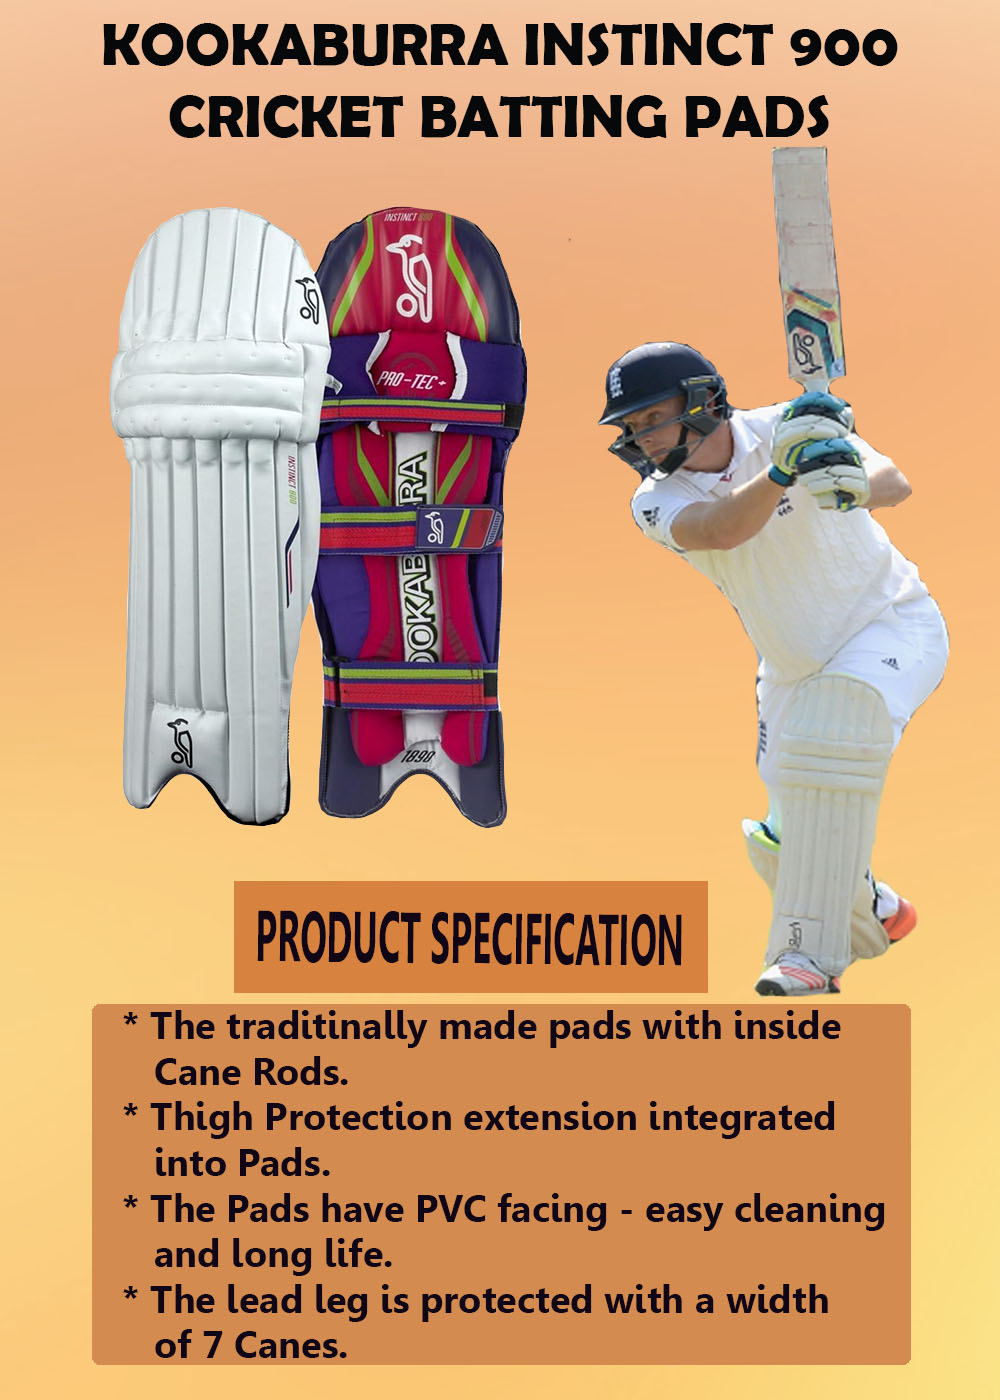 Kookaburra Instinct 900 Cricket Batting Pads_5